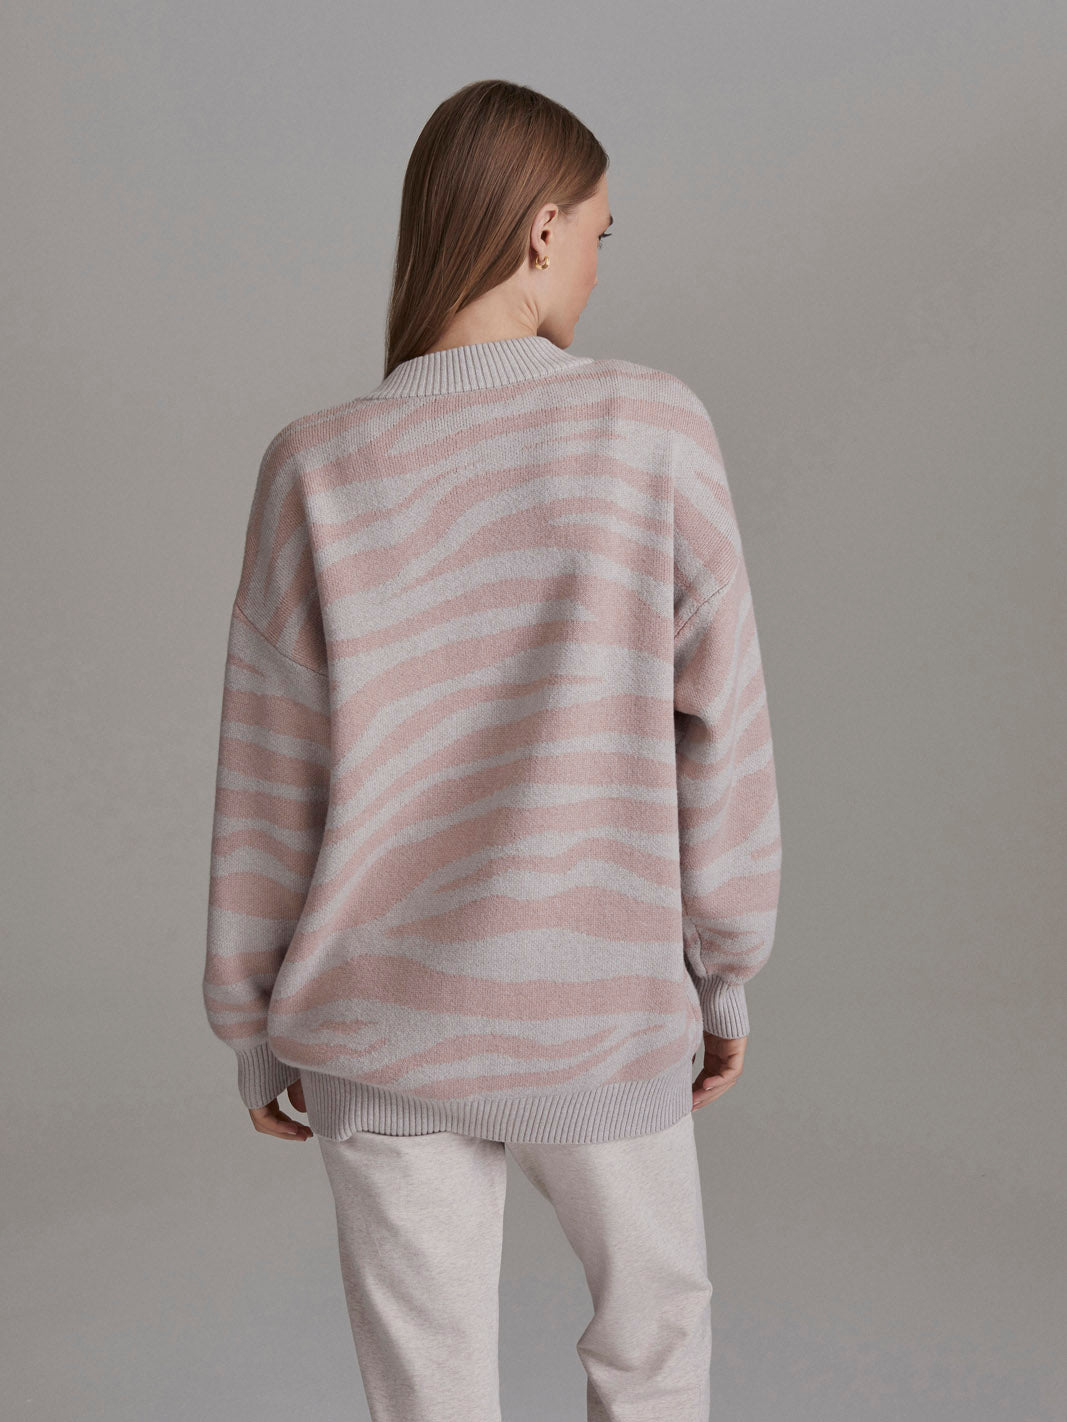 Mayberry Sweater, pale blush cobweb zebra